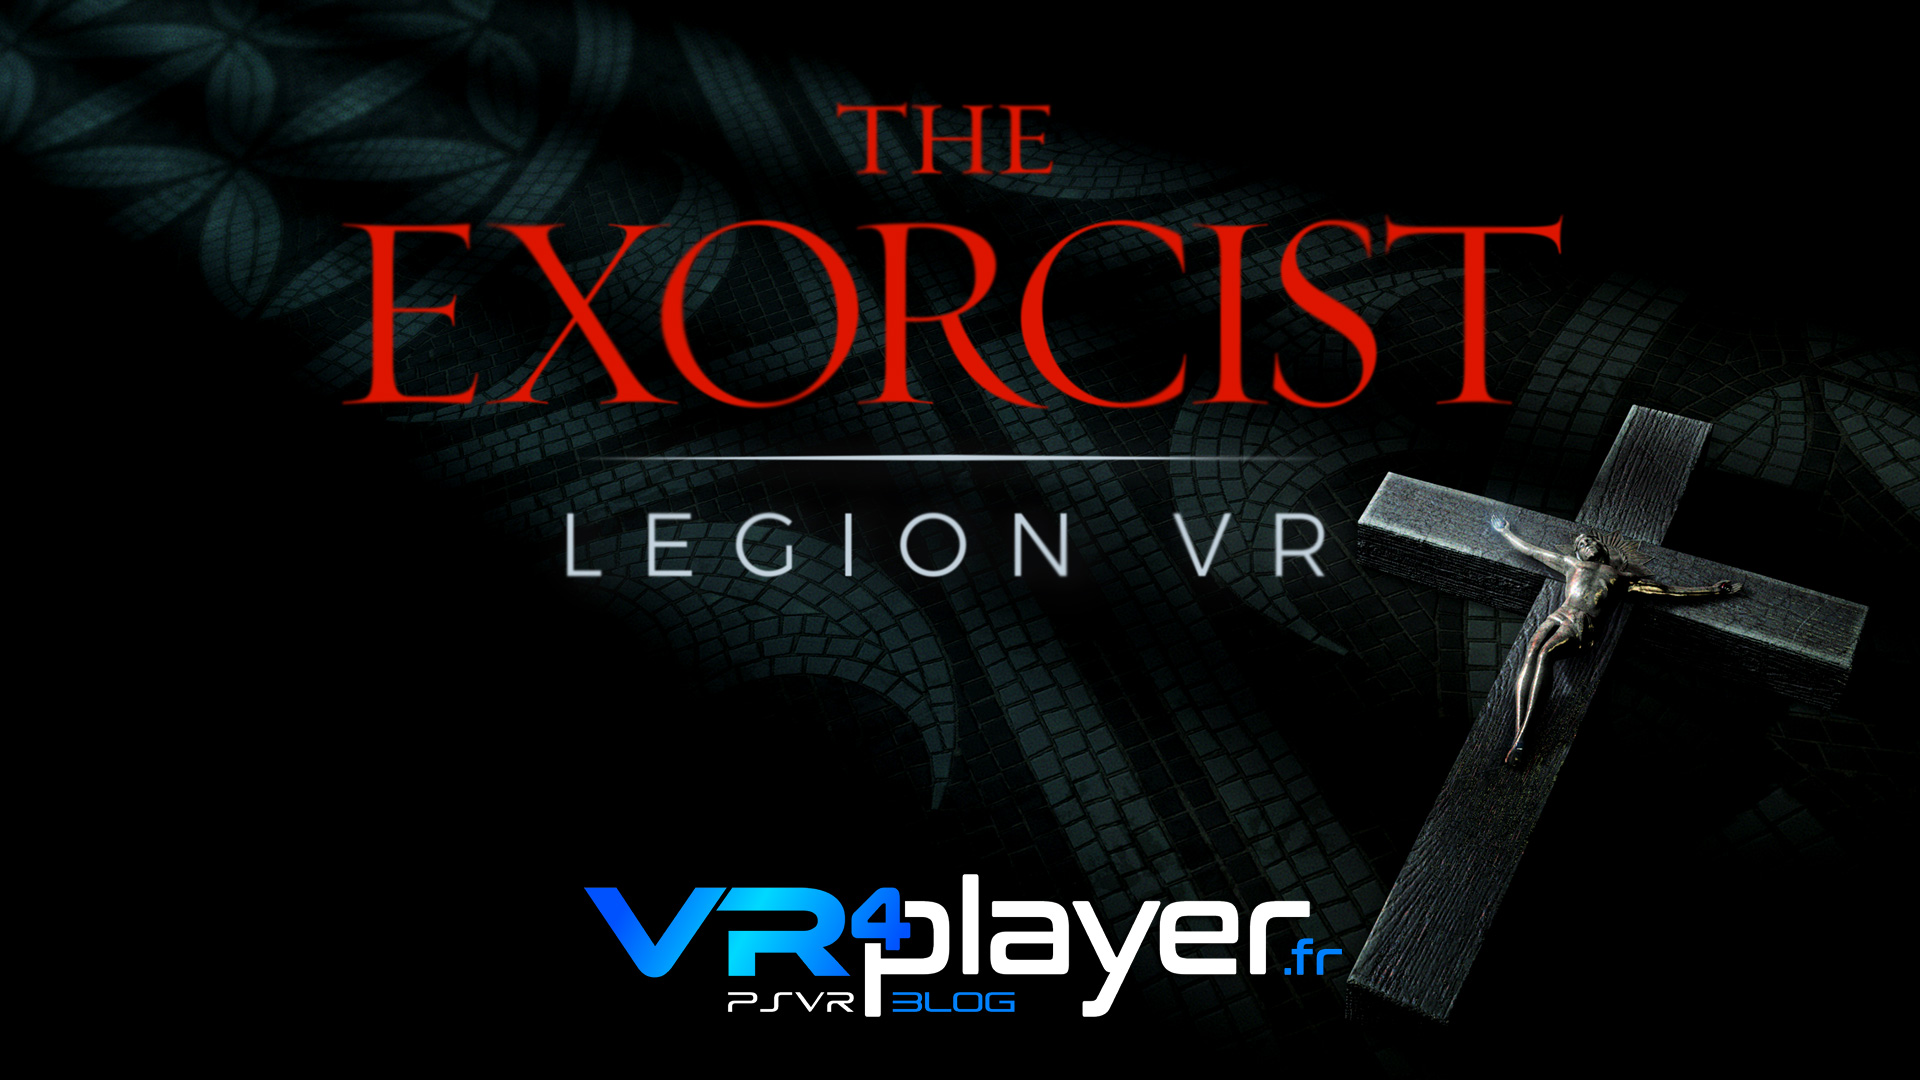 The Exorcist Legion VR sur PSVR vr4player.fr